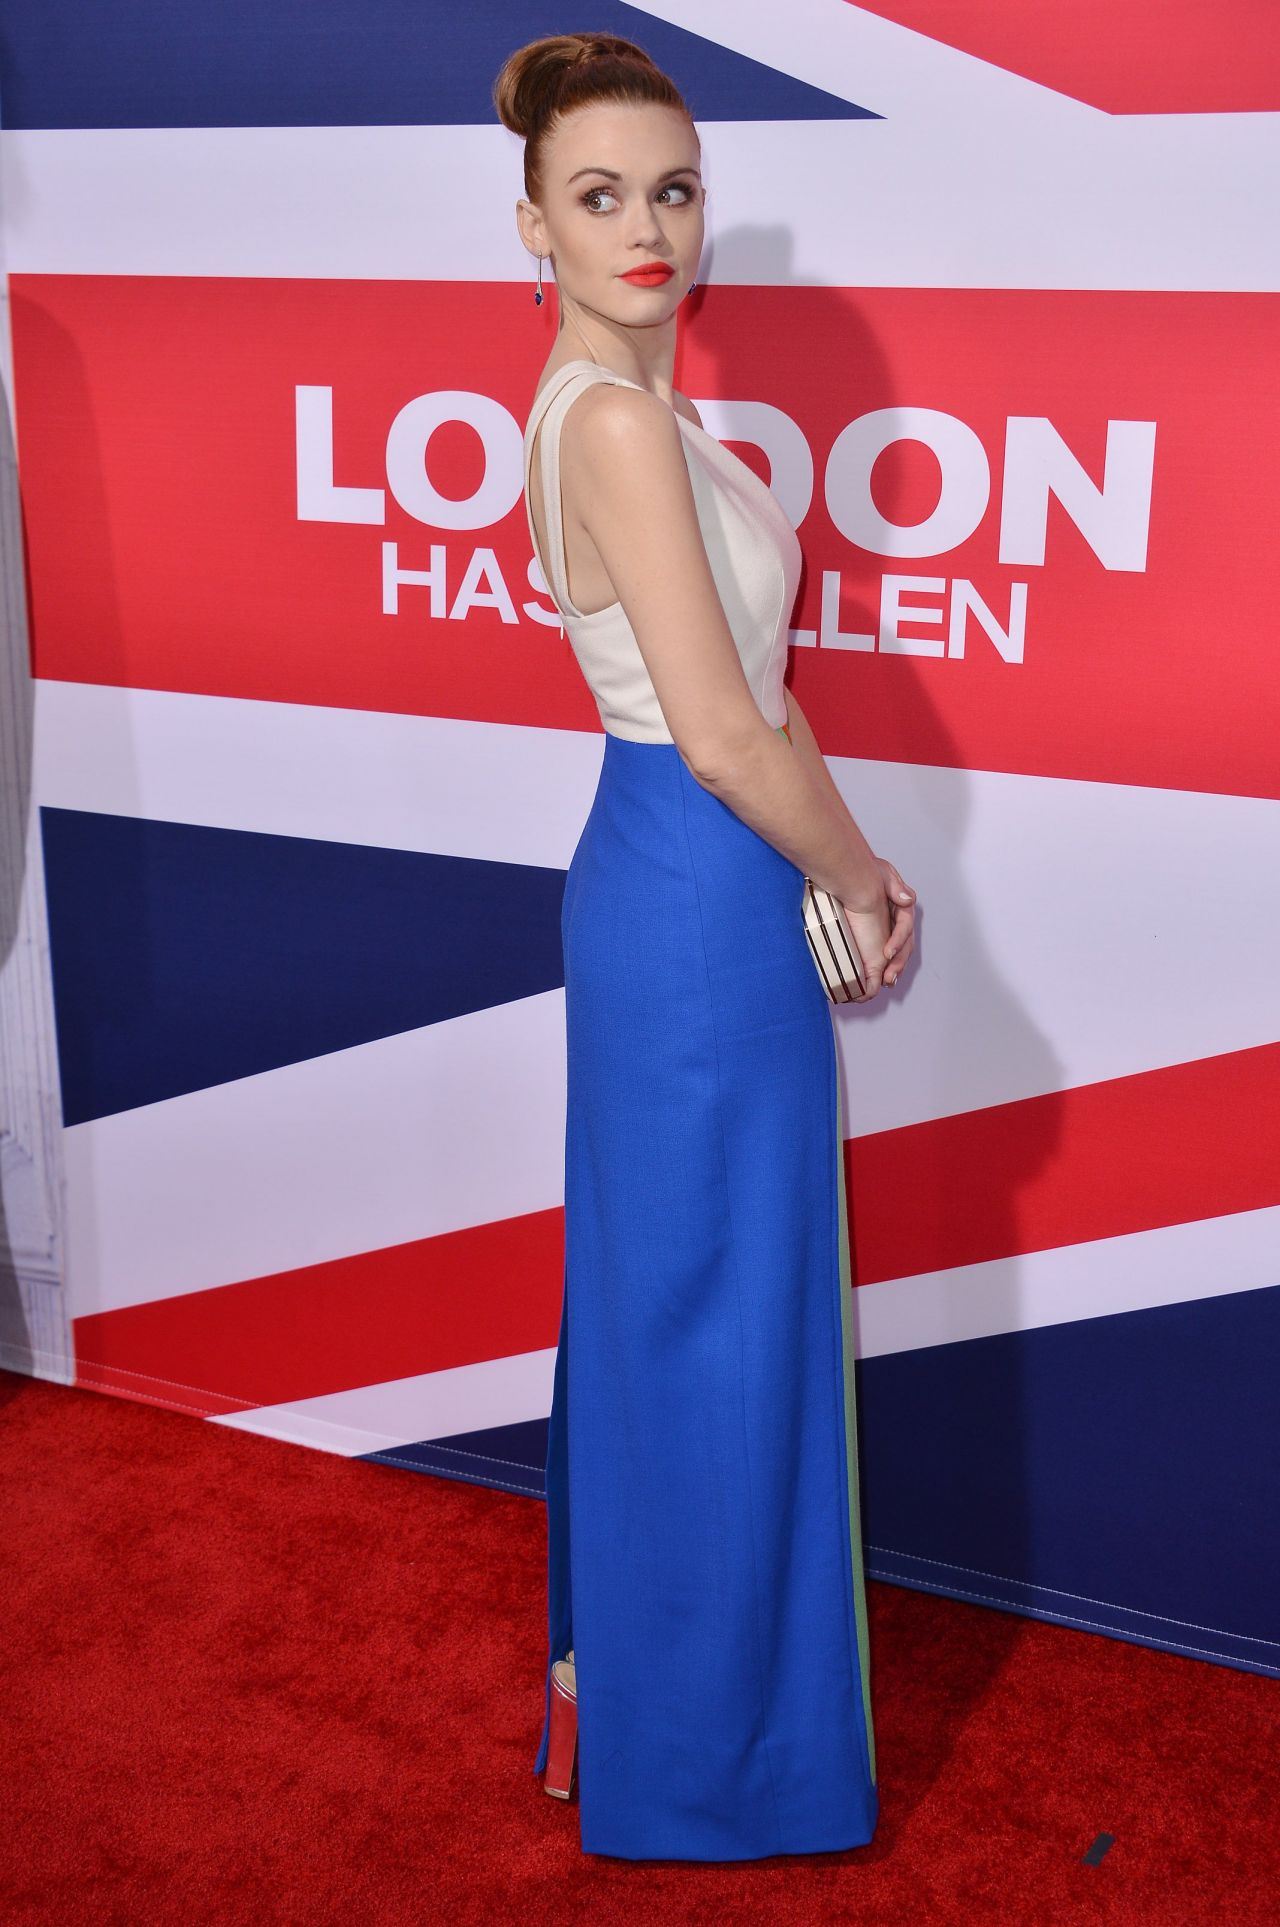 holland-roden-london-has-fallen-premiere-in-hollywood-9